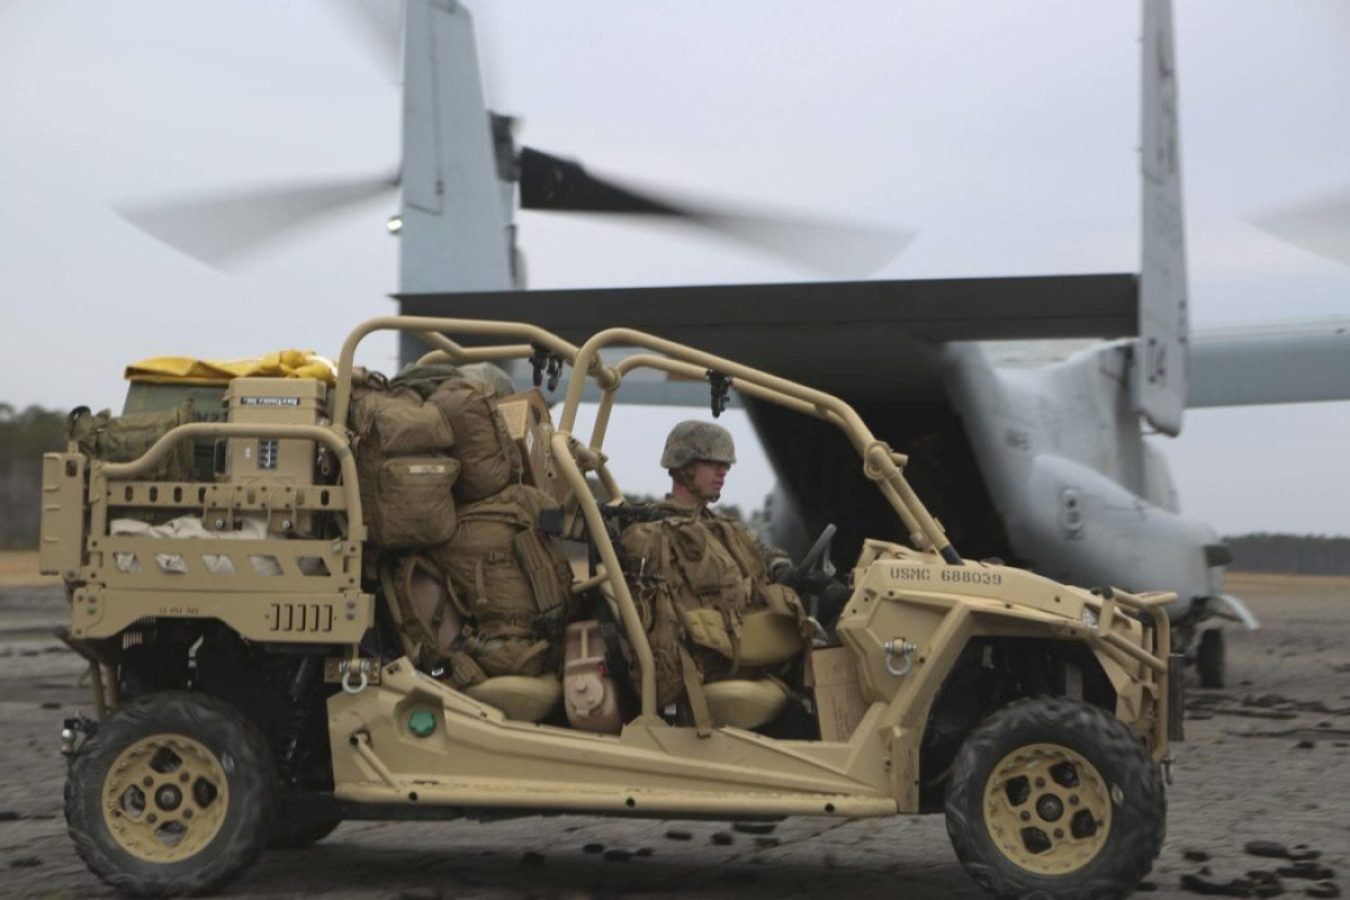 Marines unload a Utility Task Vehicle from an MV-22B Osprey on Camp Lejeune, North Carolina, Feb. 19, 2019. (U.S. Marine Corps photo by Lance Cpl. Camila Melendez)